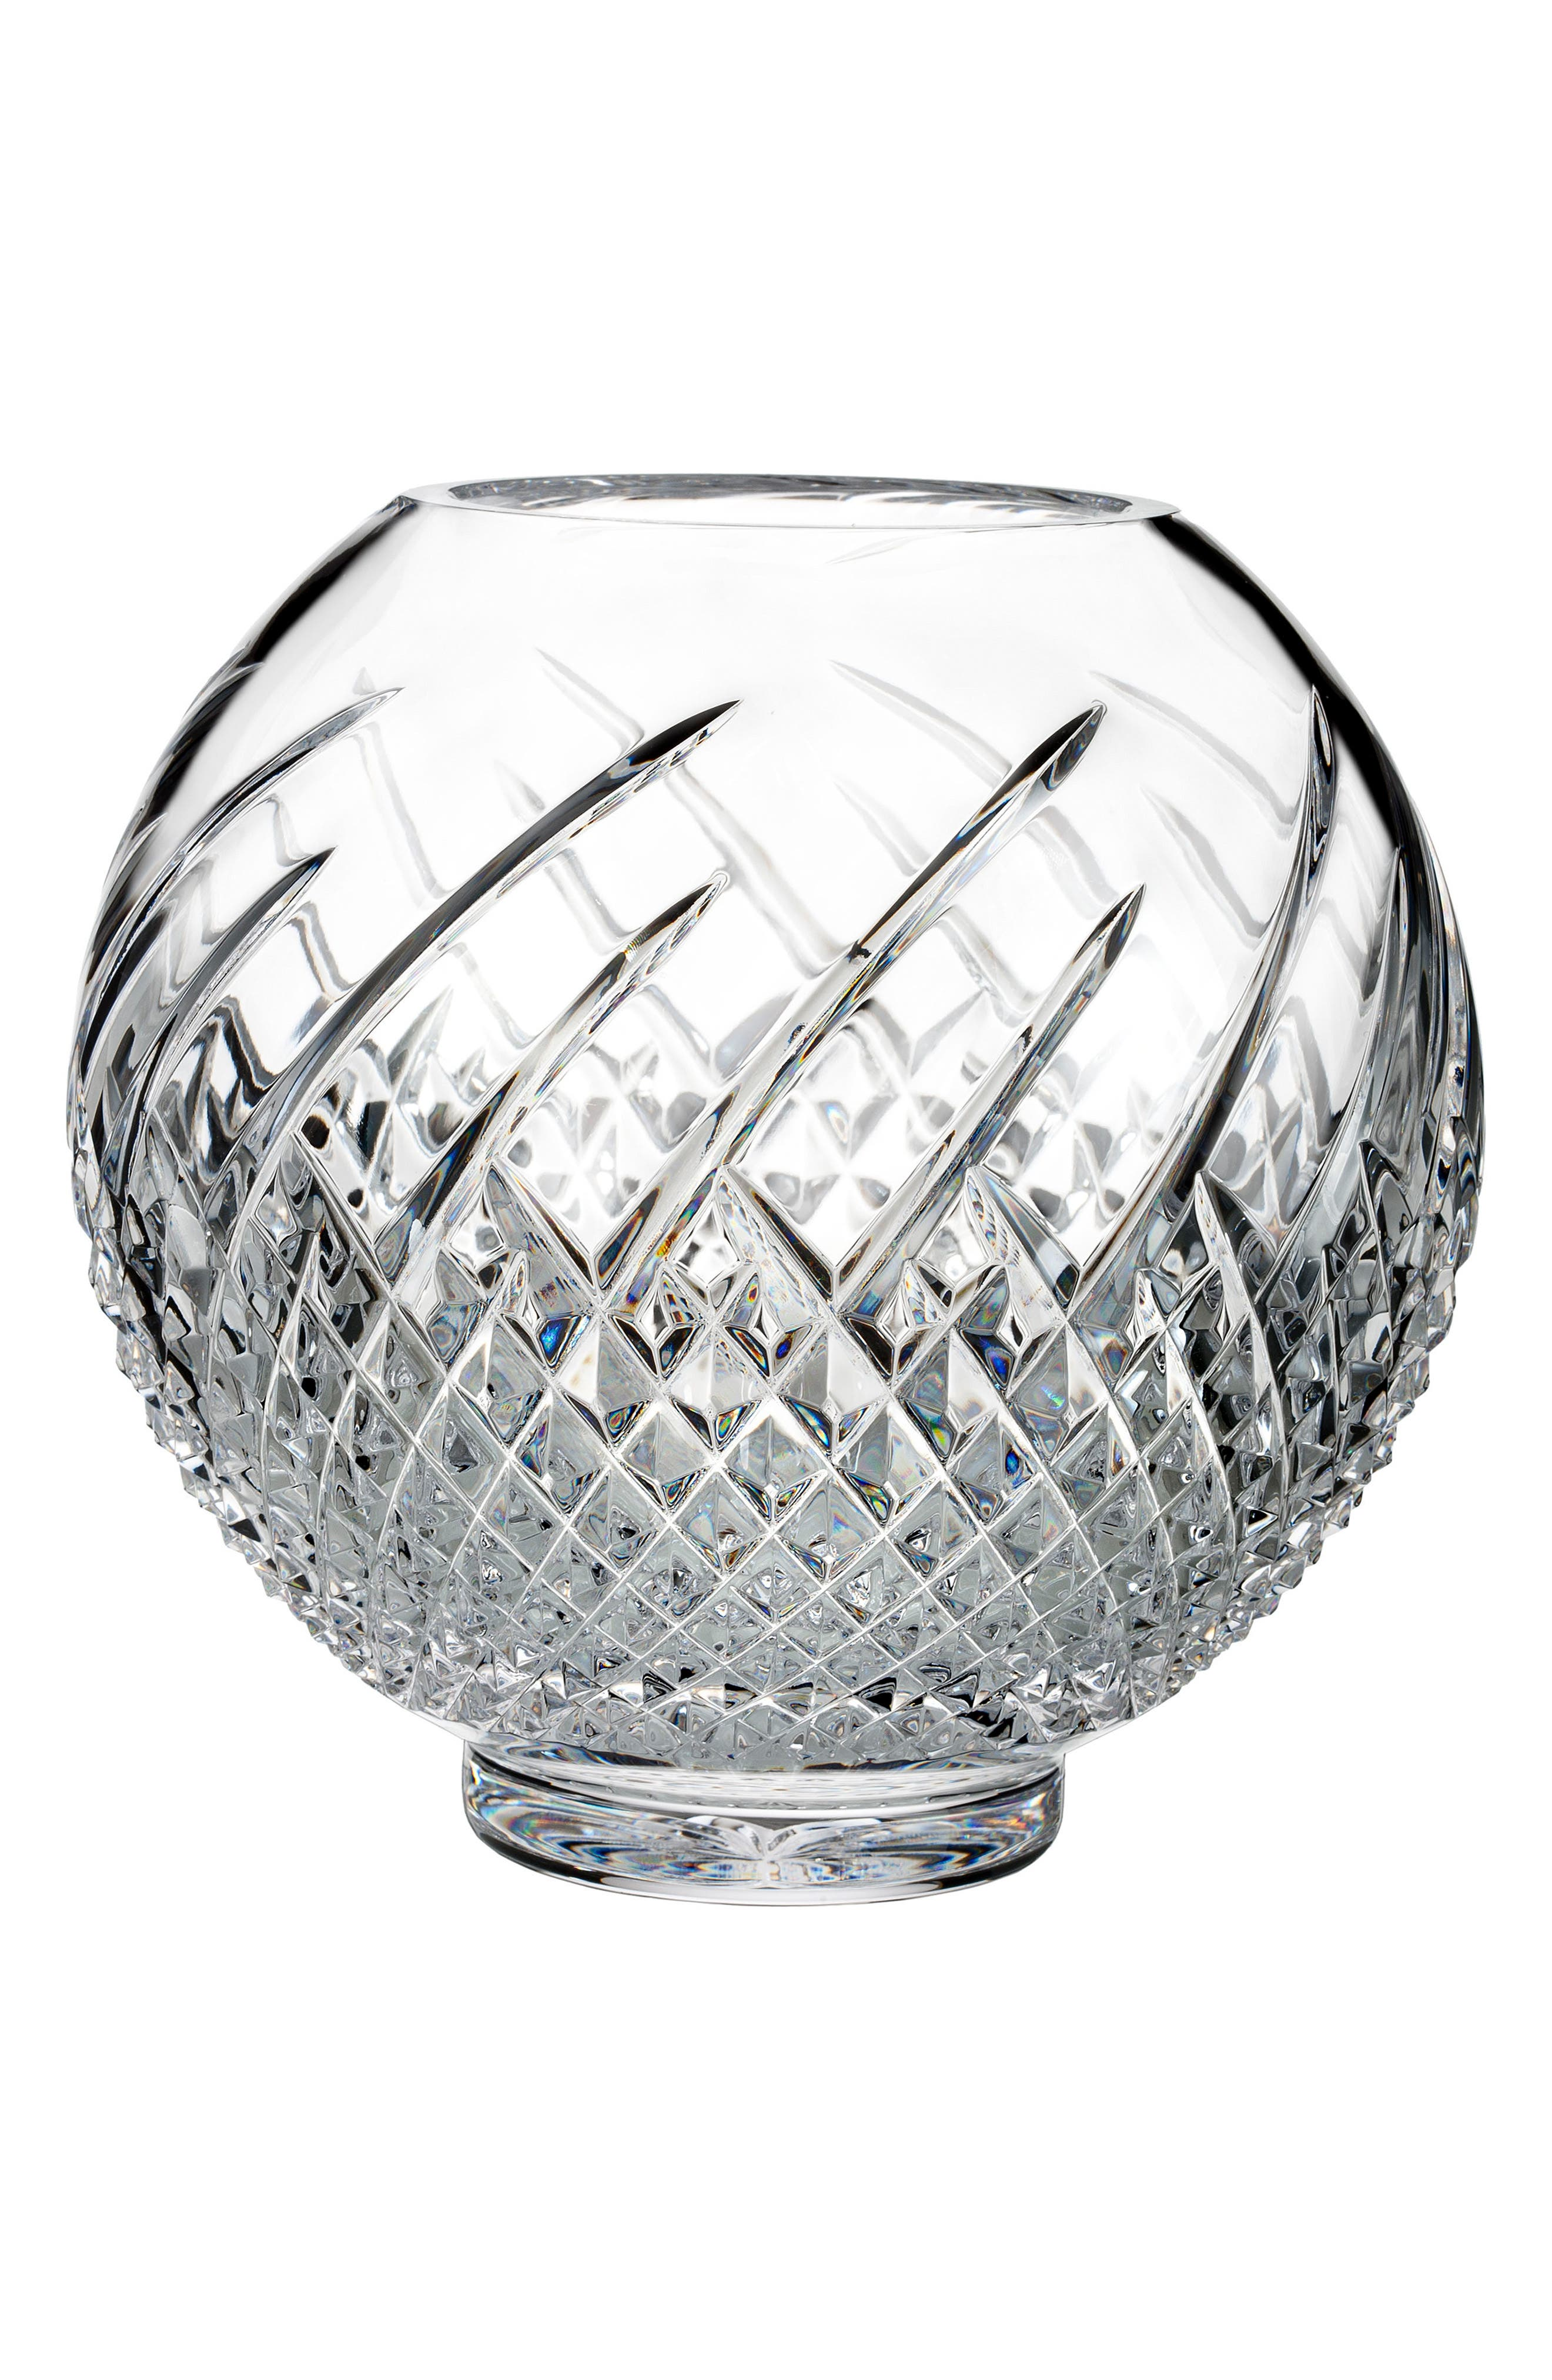 Wild Atlantic Way Lead Crystal Rose Bowl,                         Main,                         color, 100